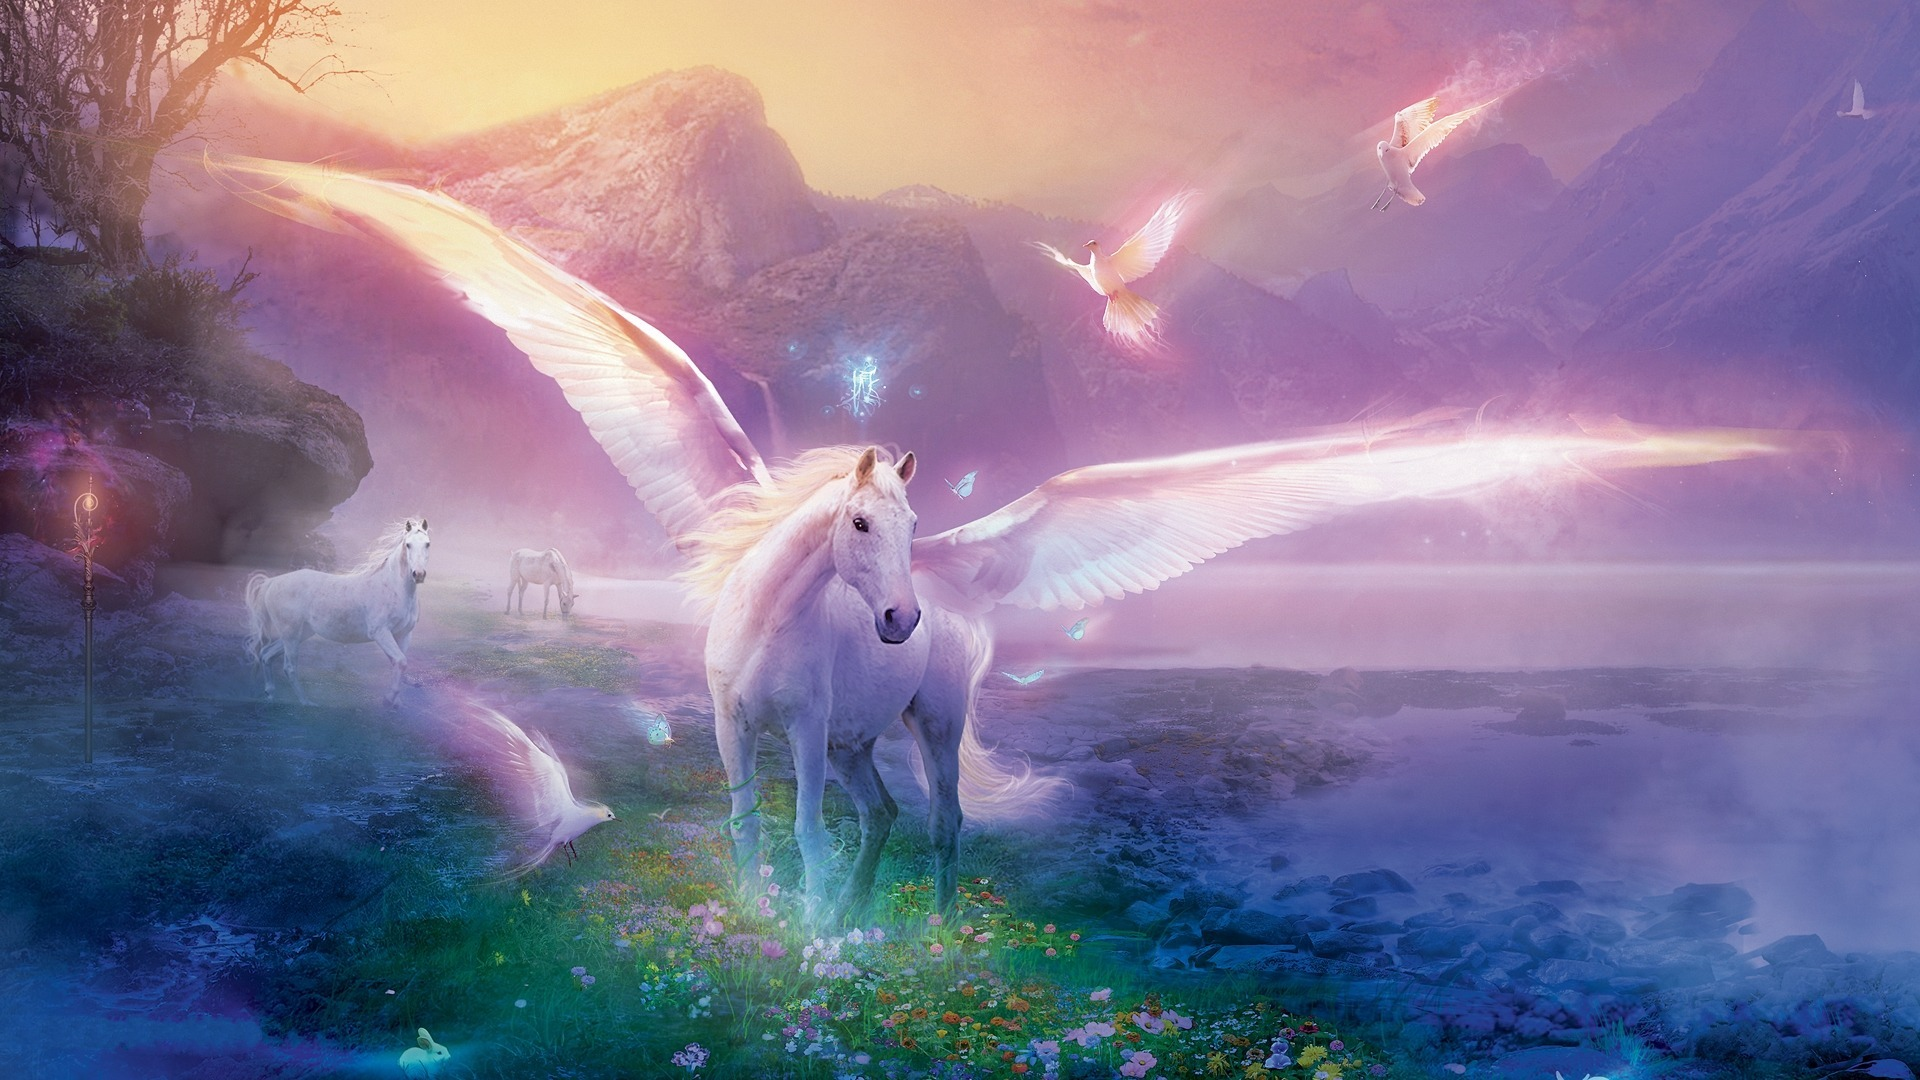 fantasy-animals-The-Images-of-unicorn-1920x1080-winged-white-horse-HD-wallpaper-wpc5804710